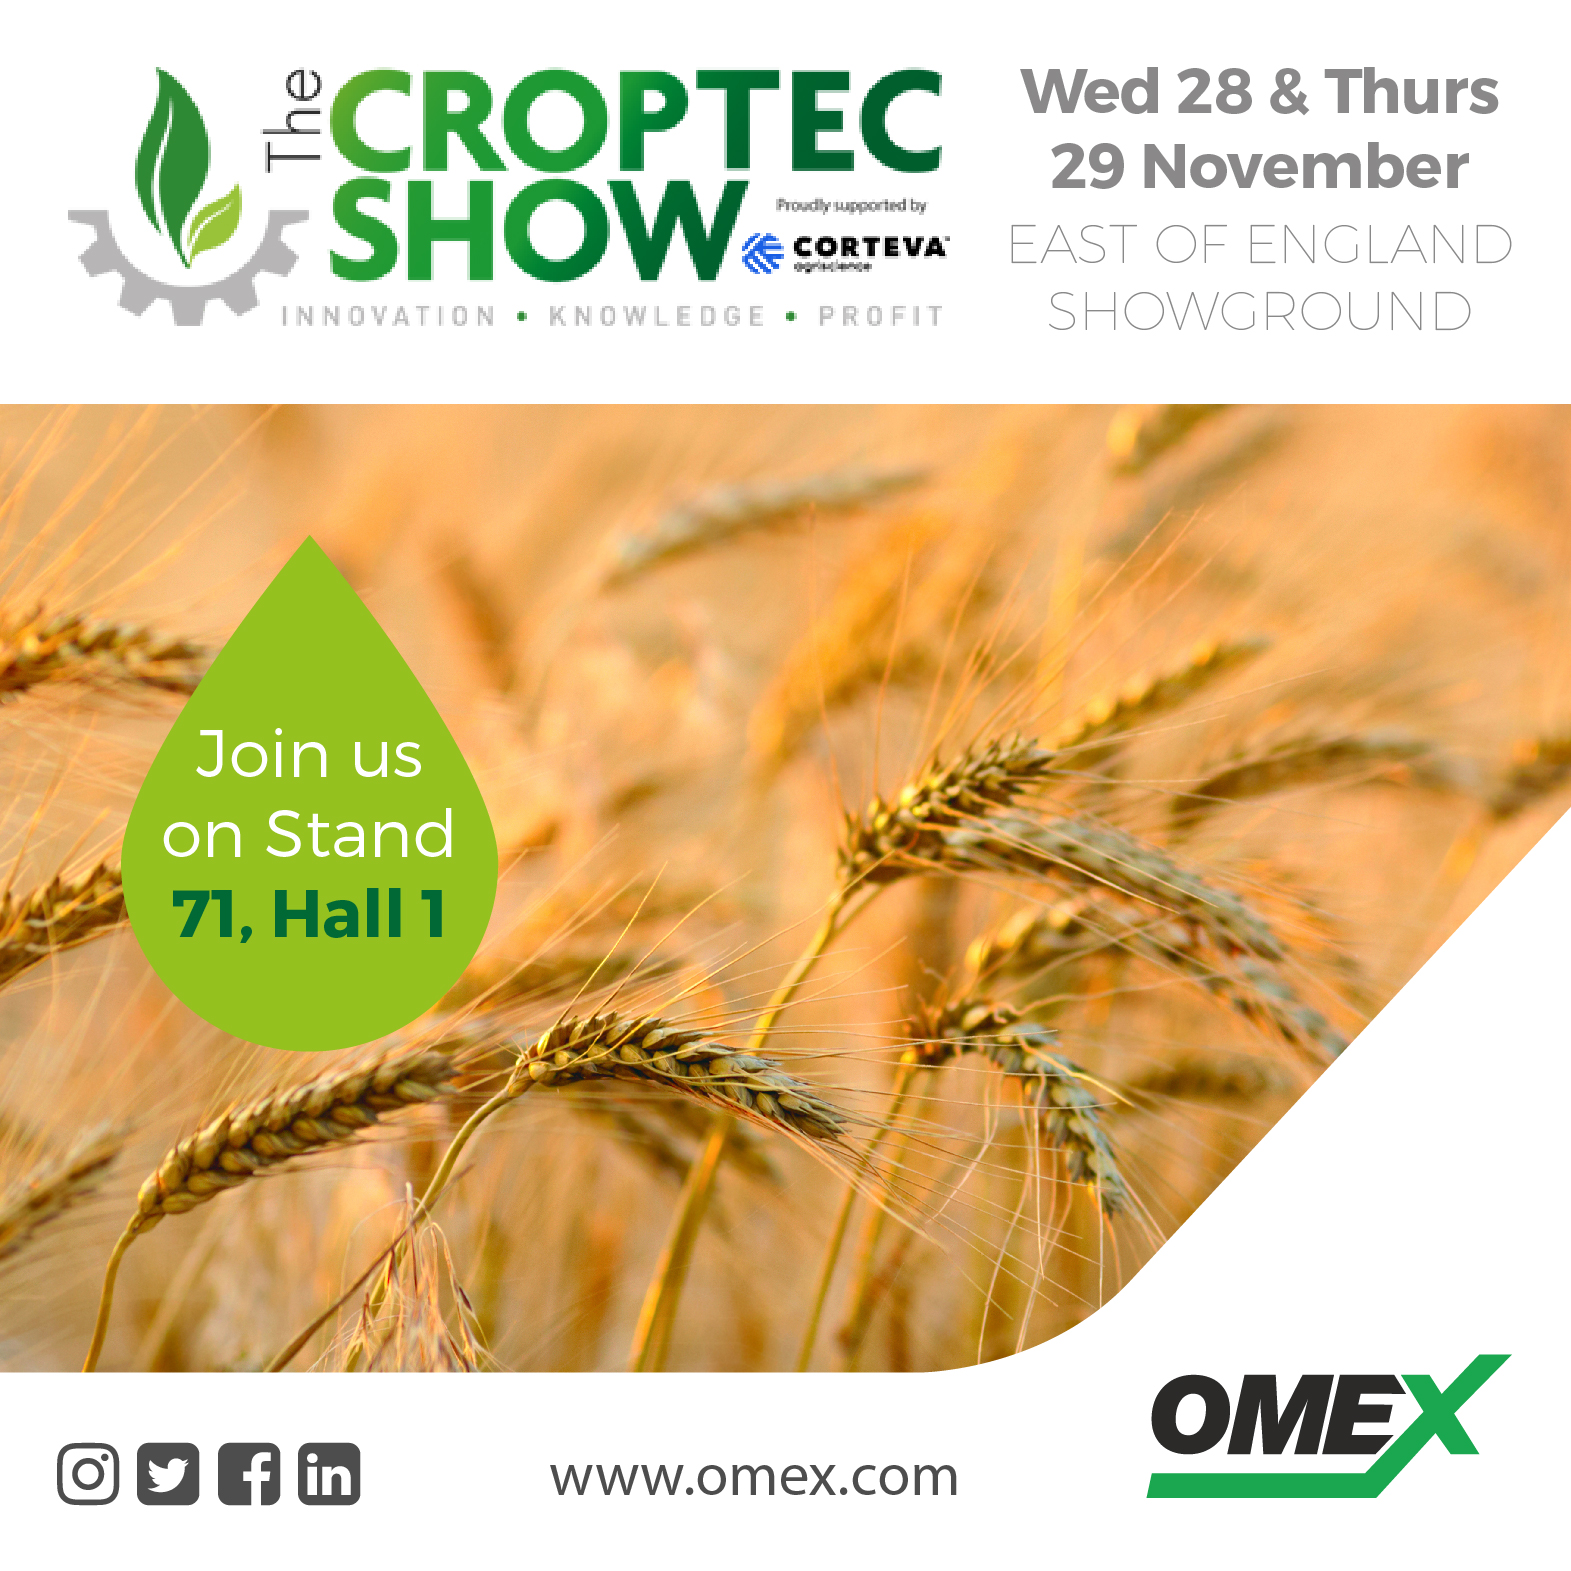 The Croptec Show, 28th & 29 November